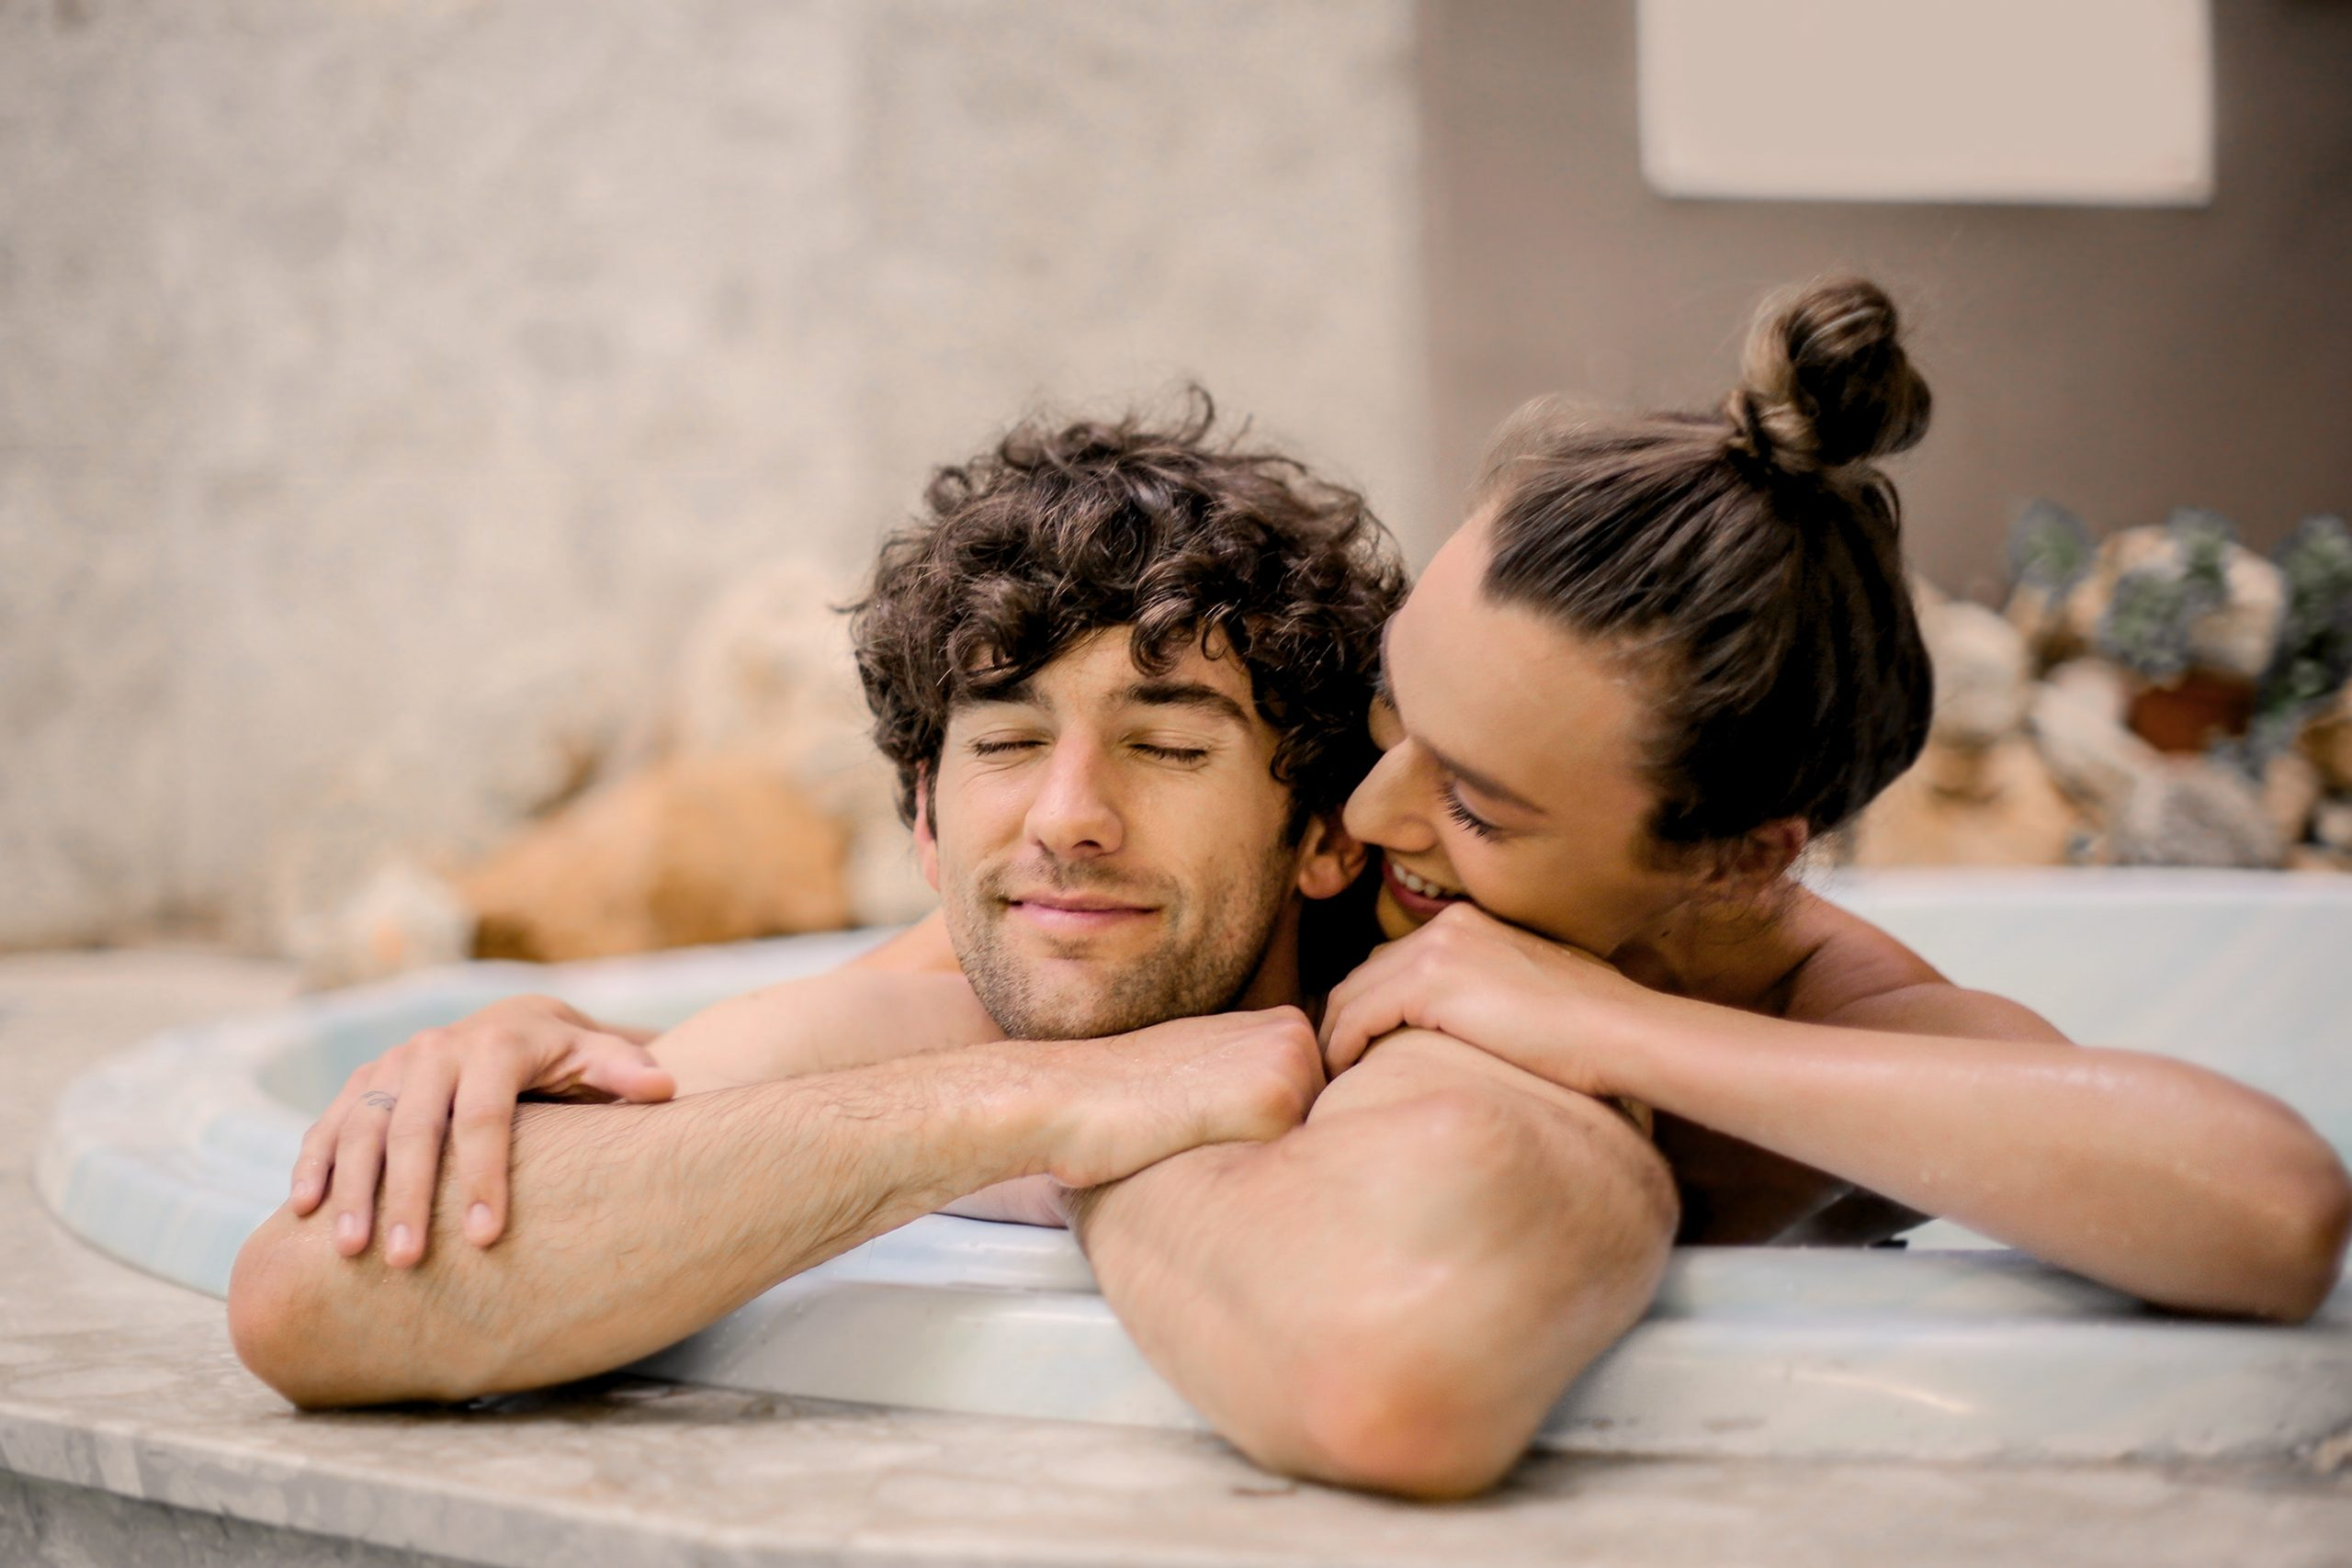 couple embracing in a jacuzzi tub together